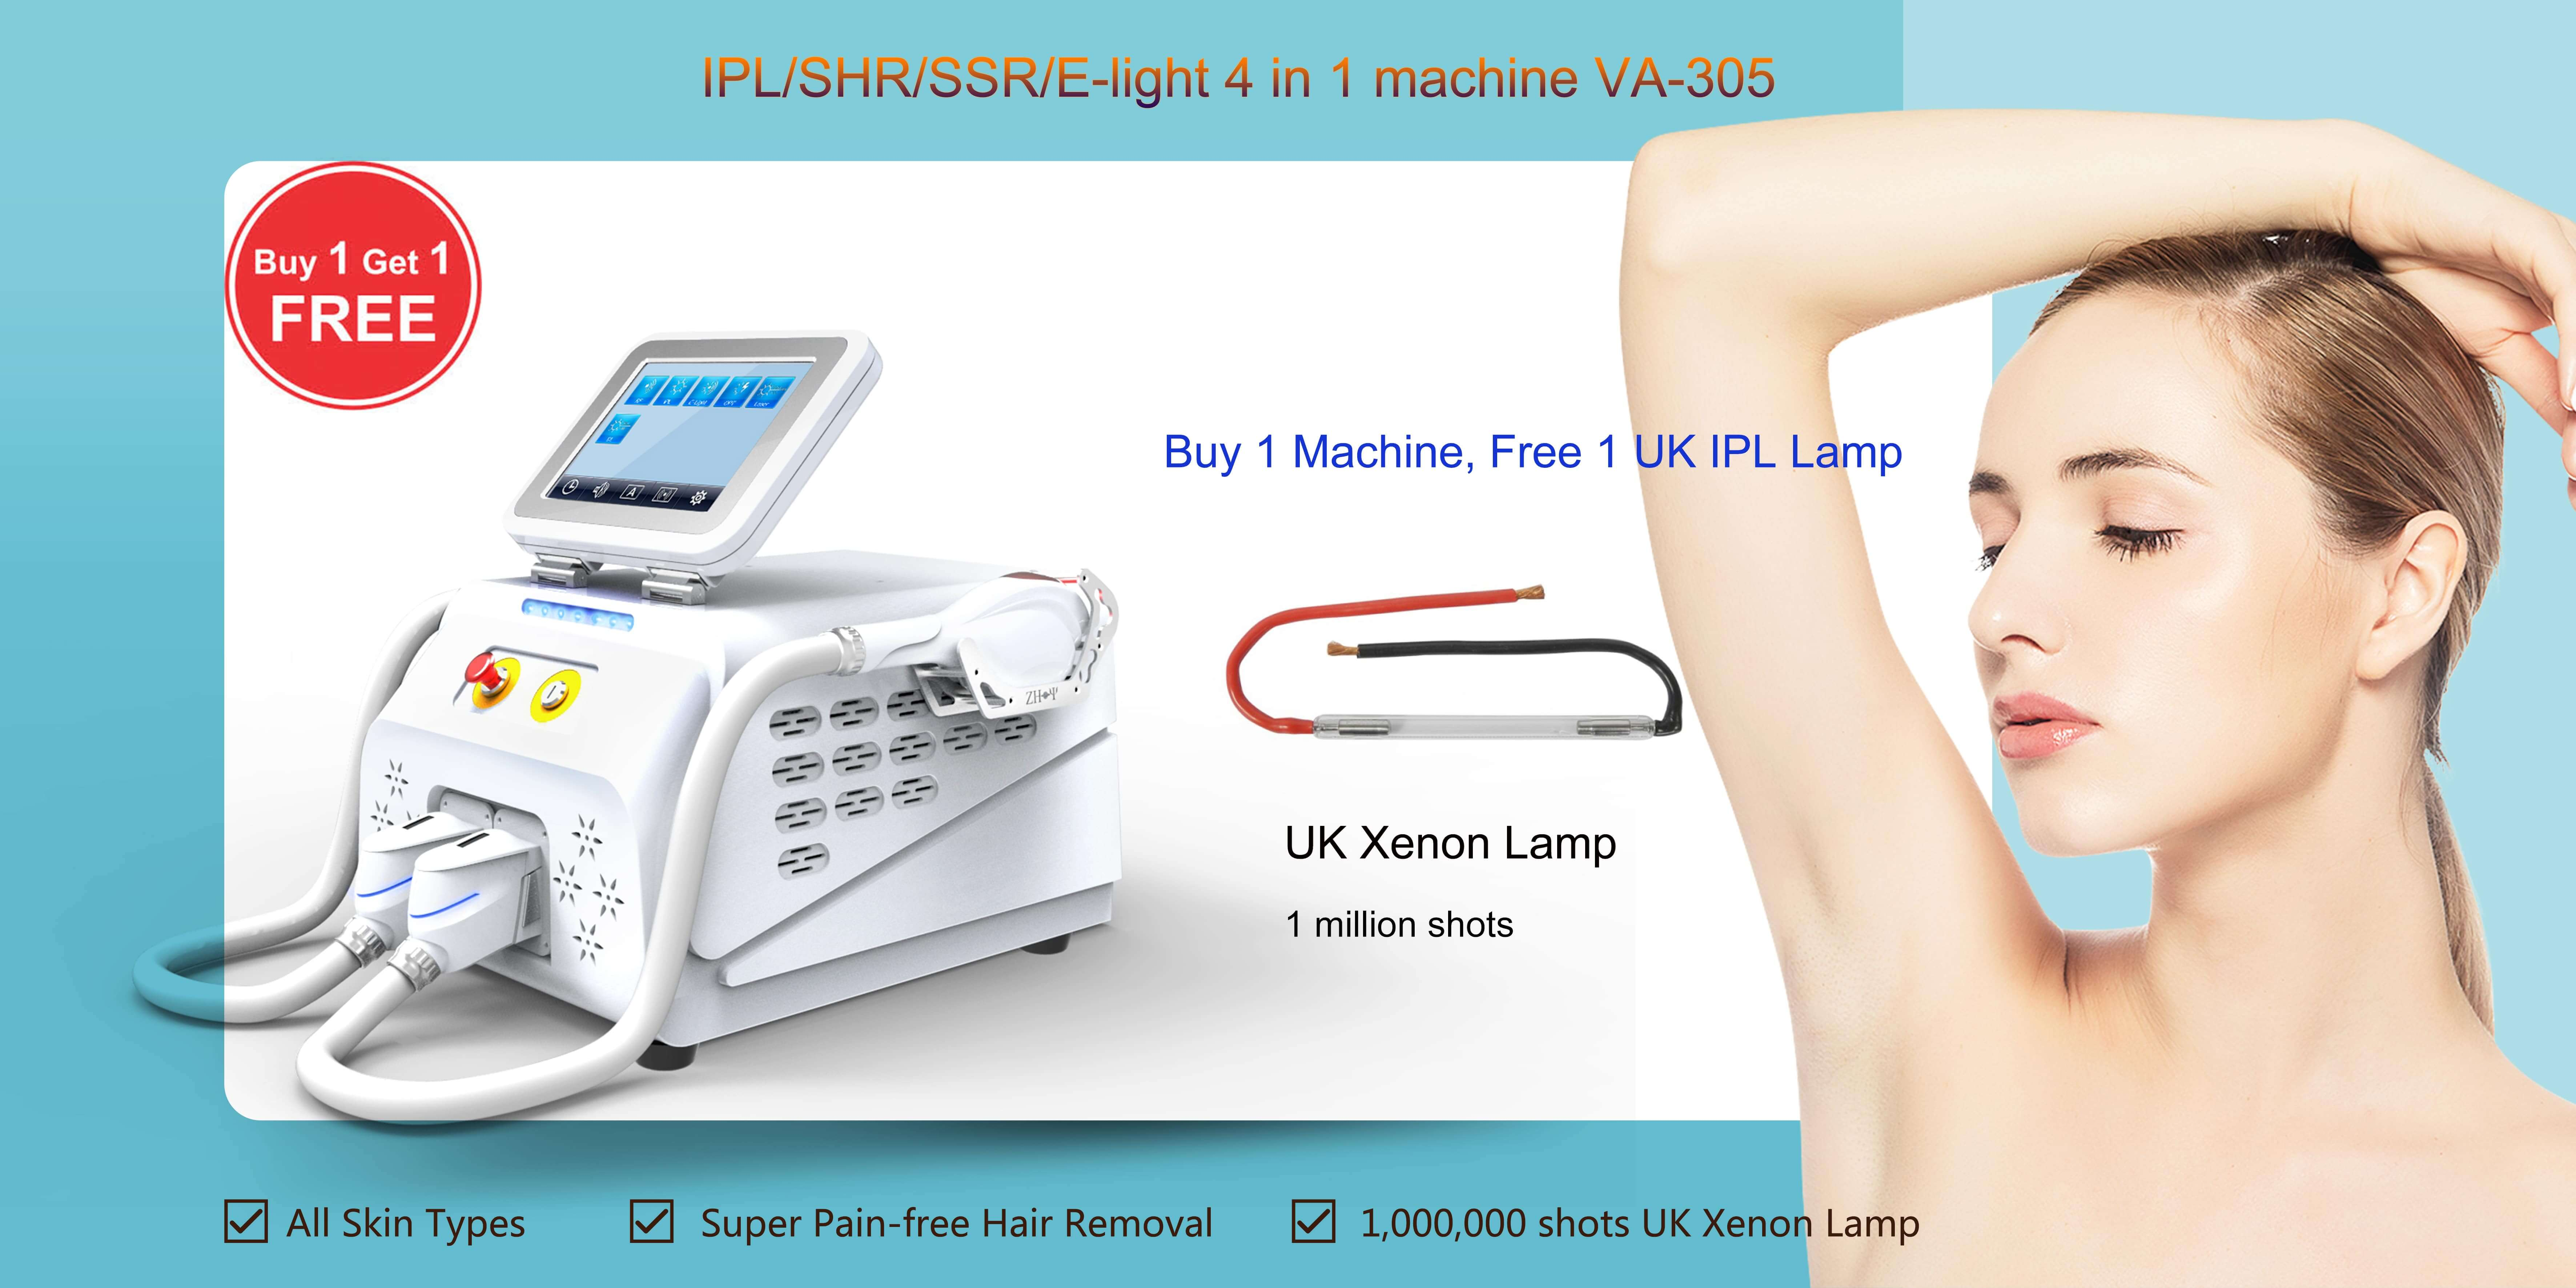 Ipl Machine For Sale 2020 All Skin Types Laser Skin Care Vivalaser